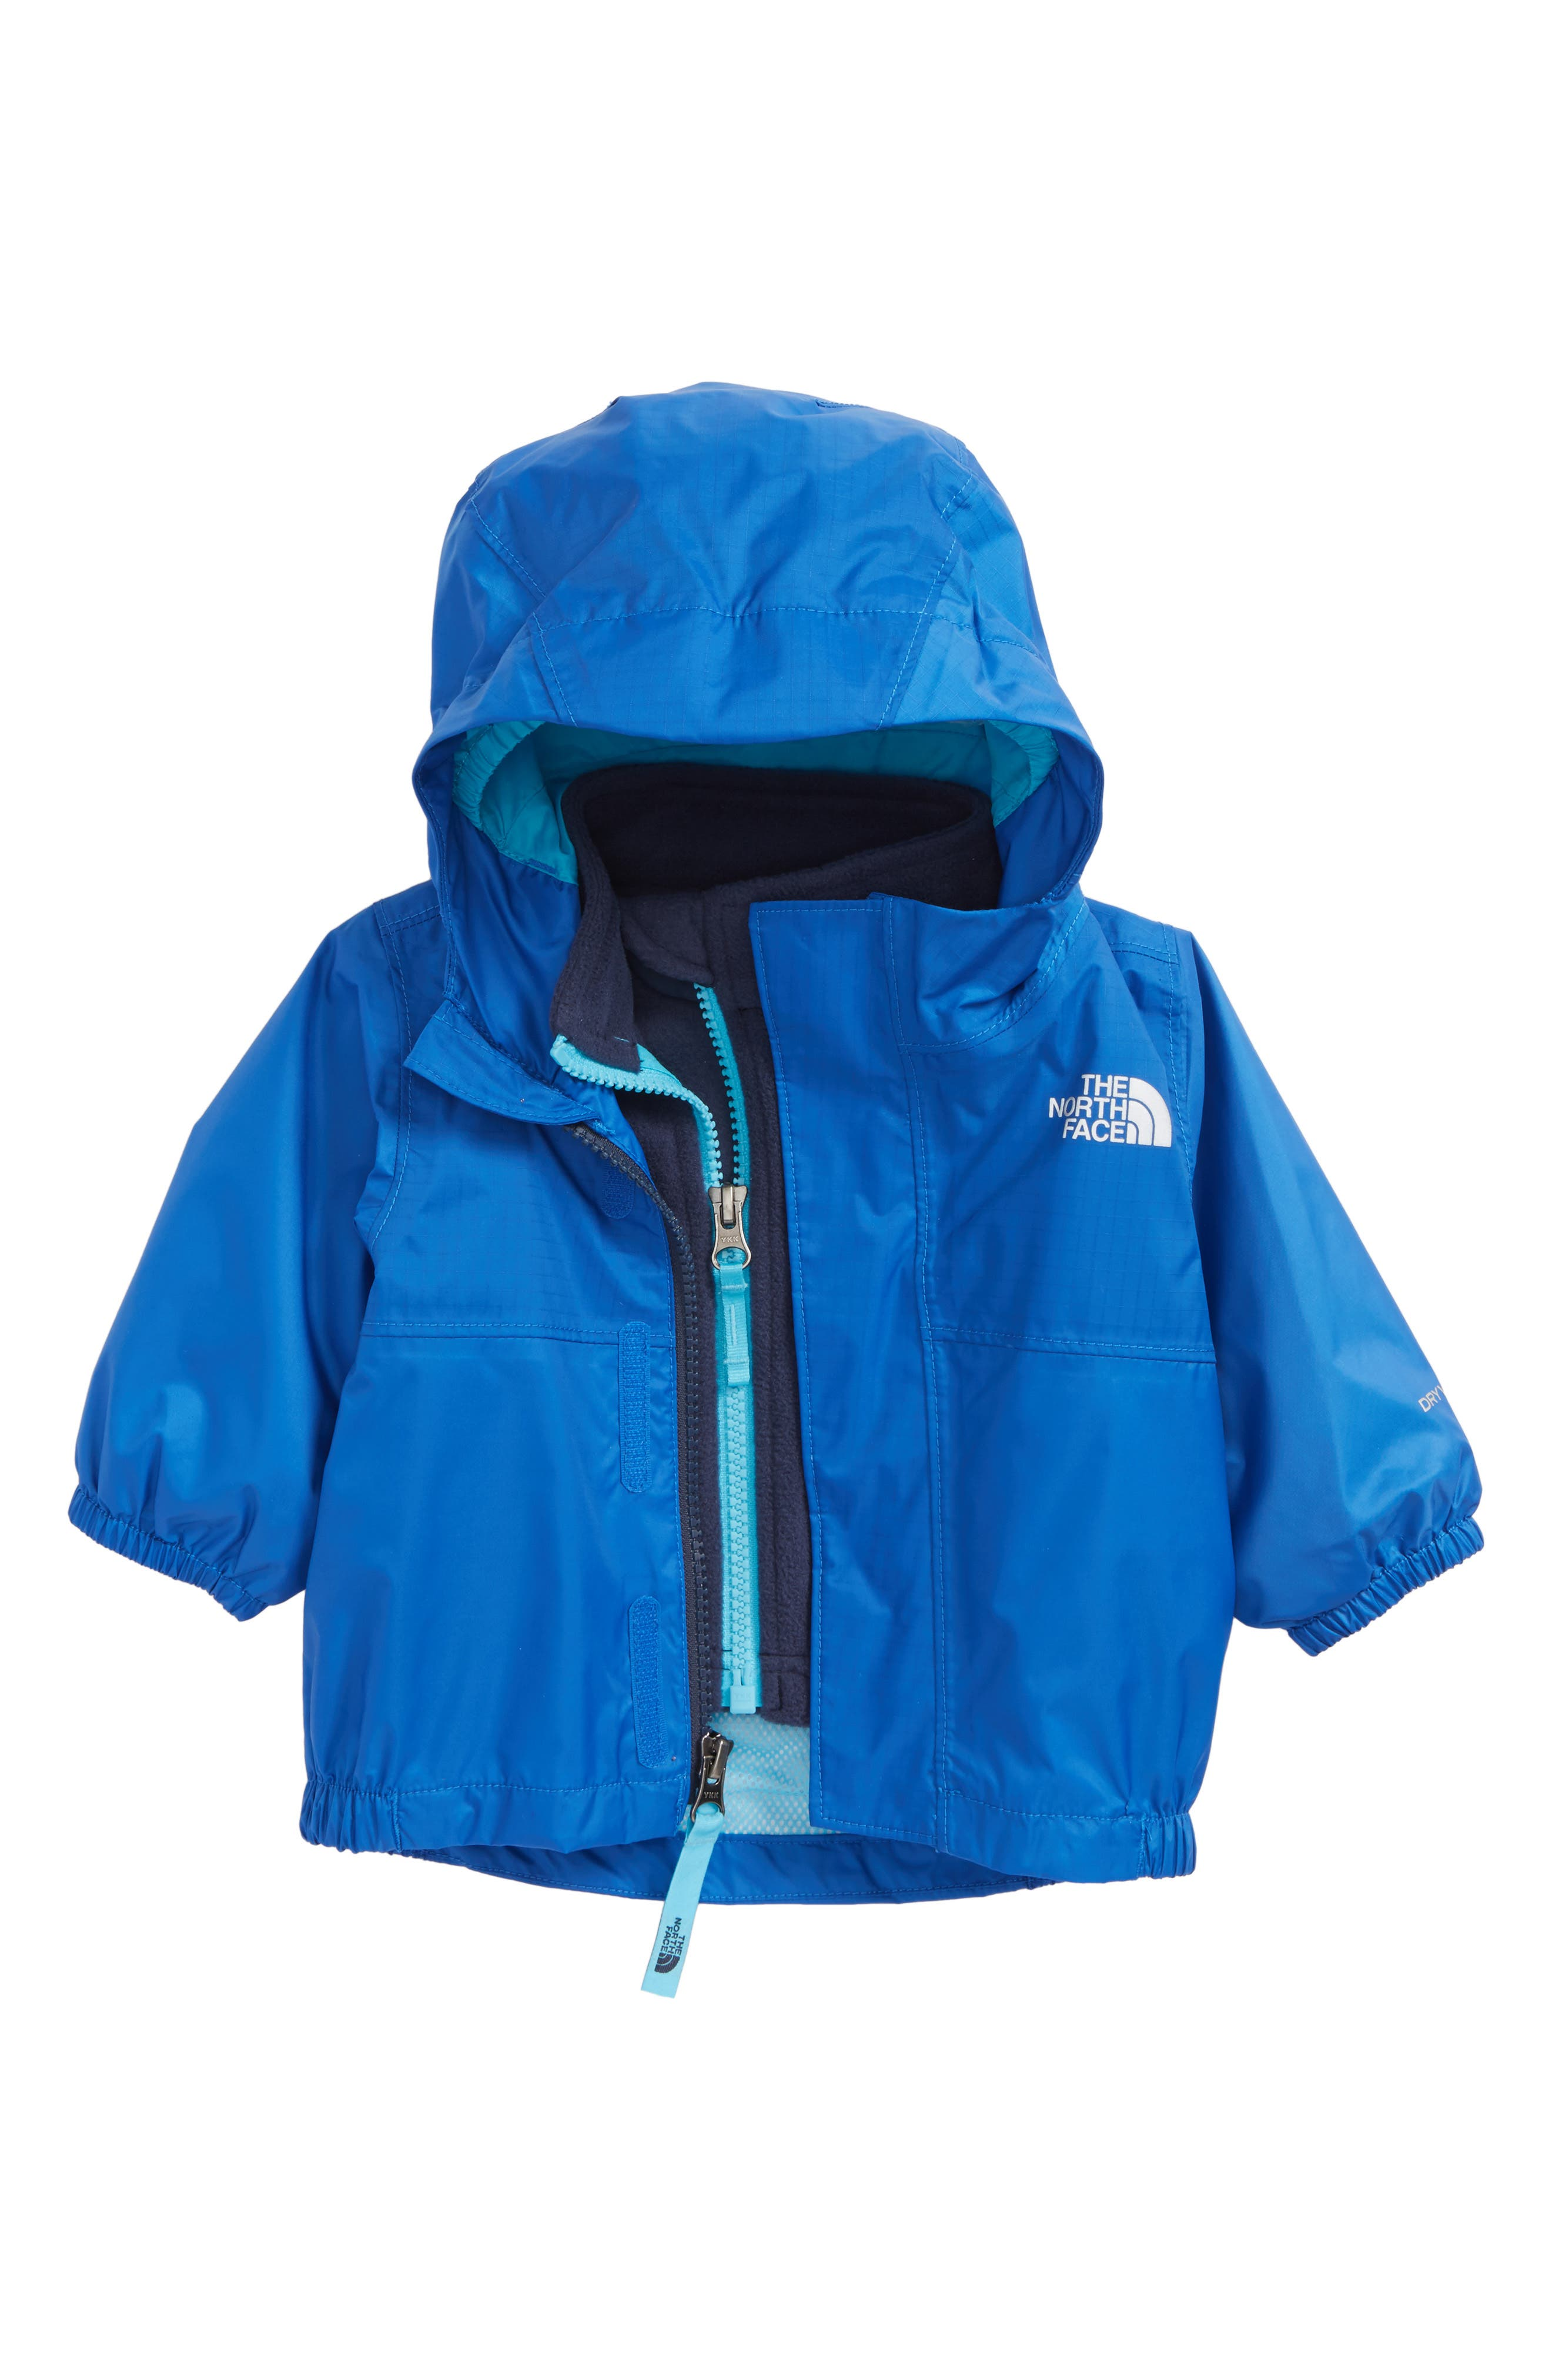 Stormy Rain TriClimate<sup>®</sup> Waterproof & Windproof 3-in-1 Jacket,                             Main thumbnail 1, color,